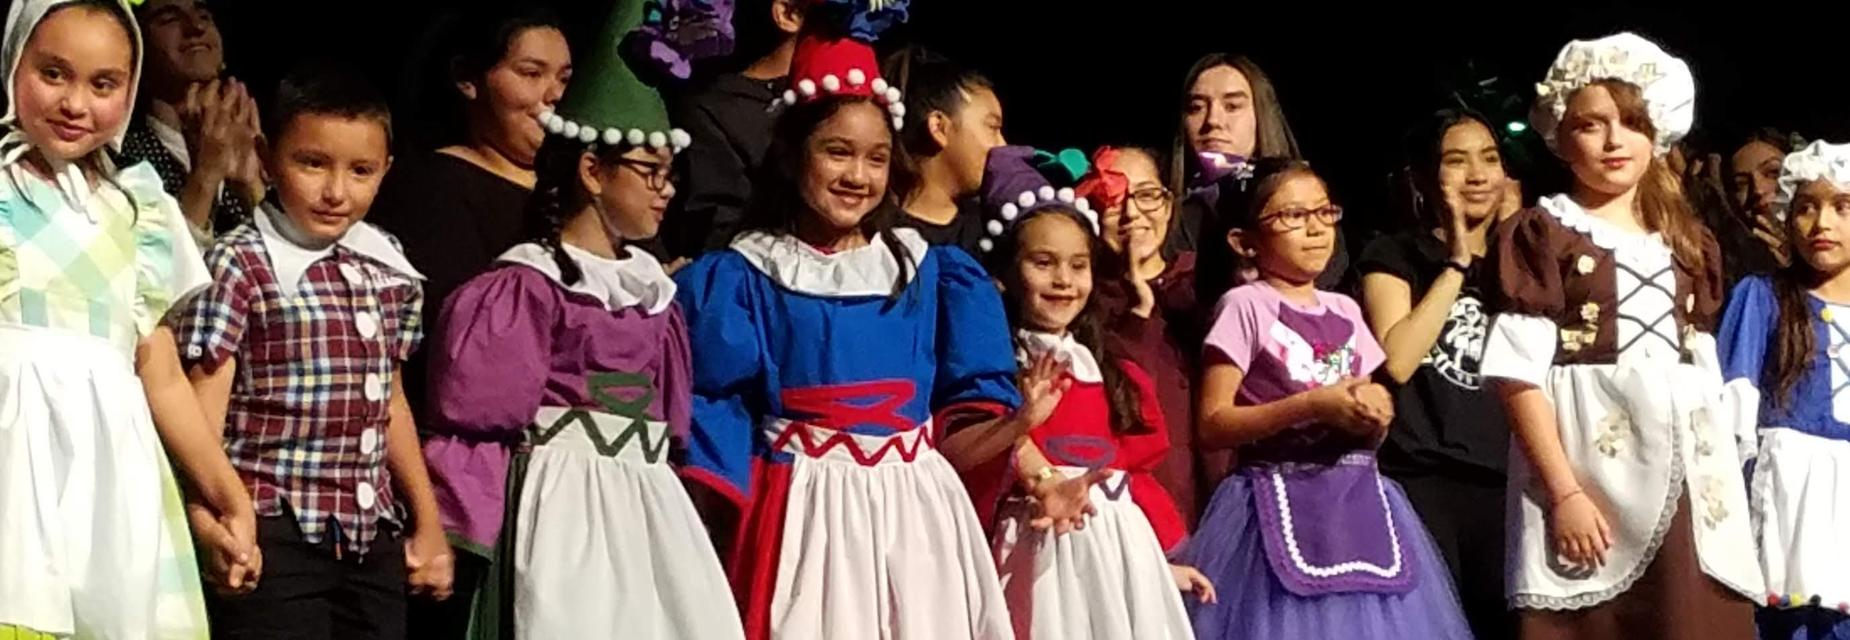 Wizard of Oz students on stage